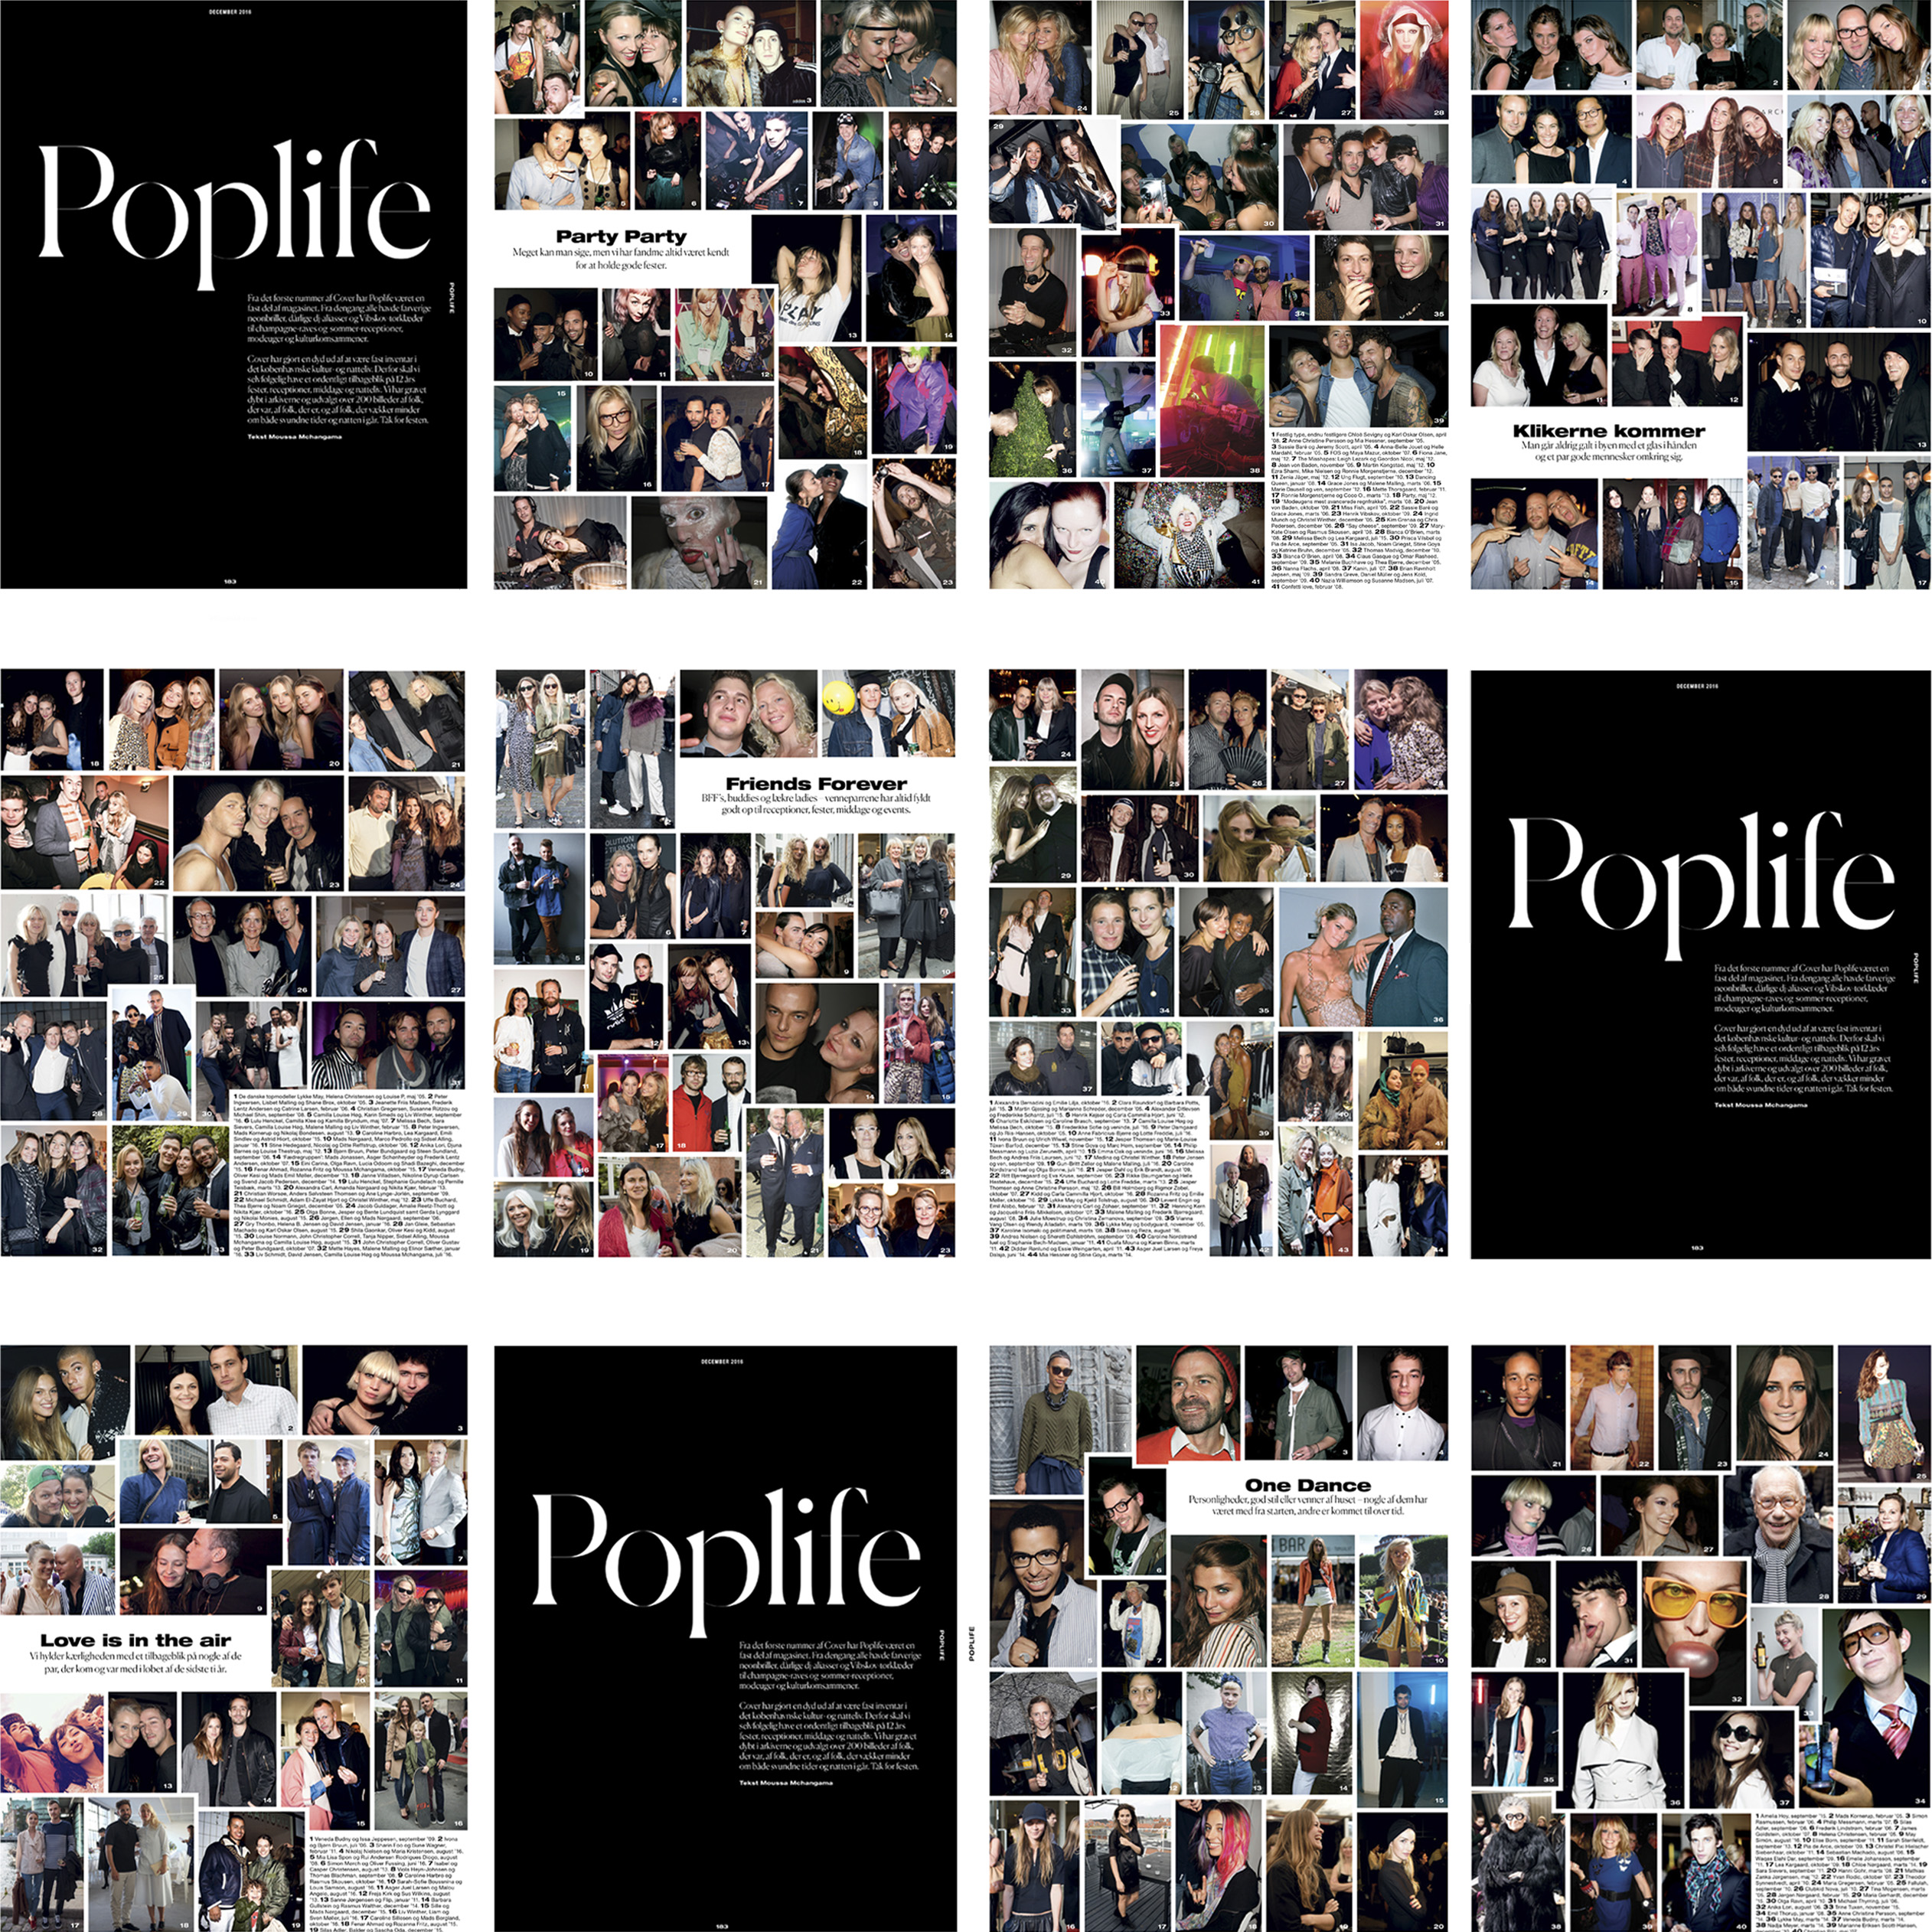 poplife_cover_instagram_helenalundquist